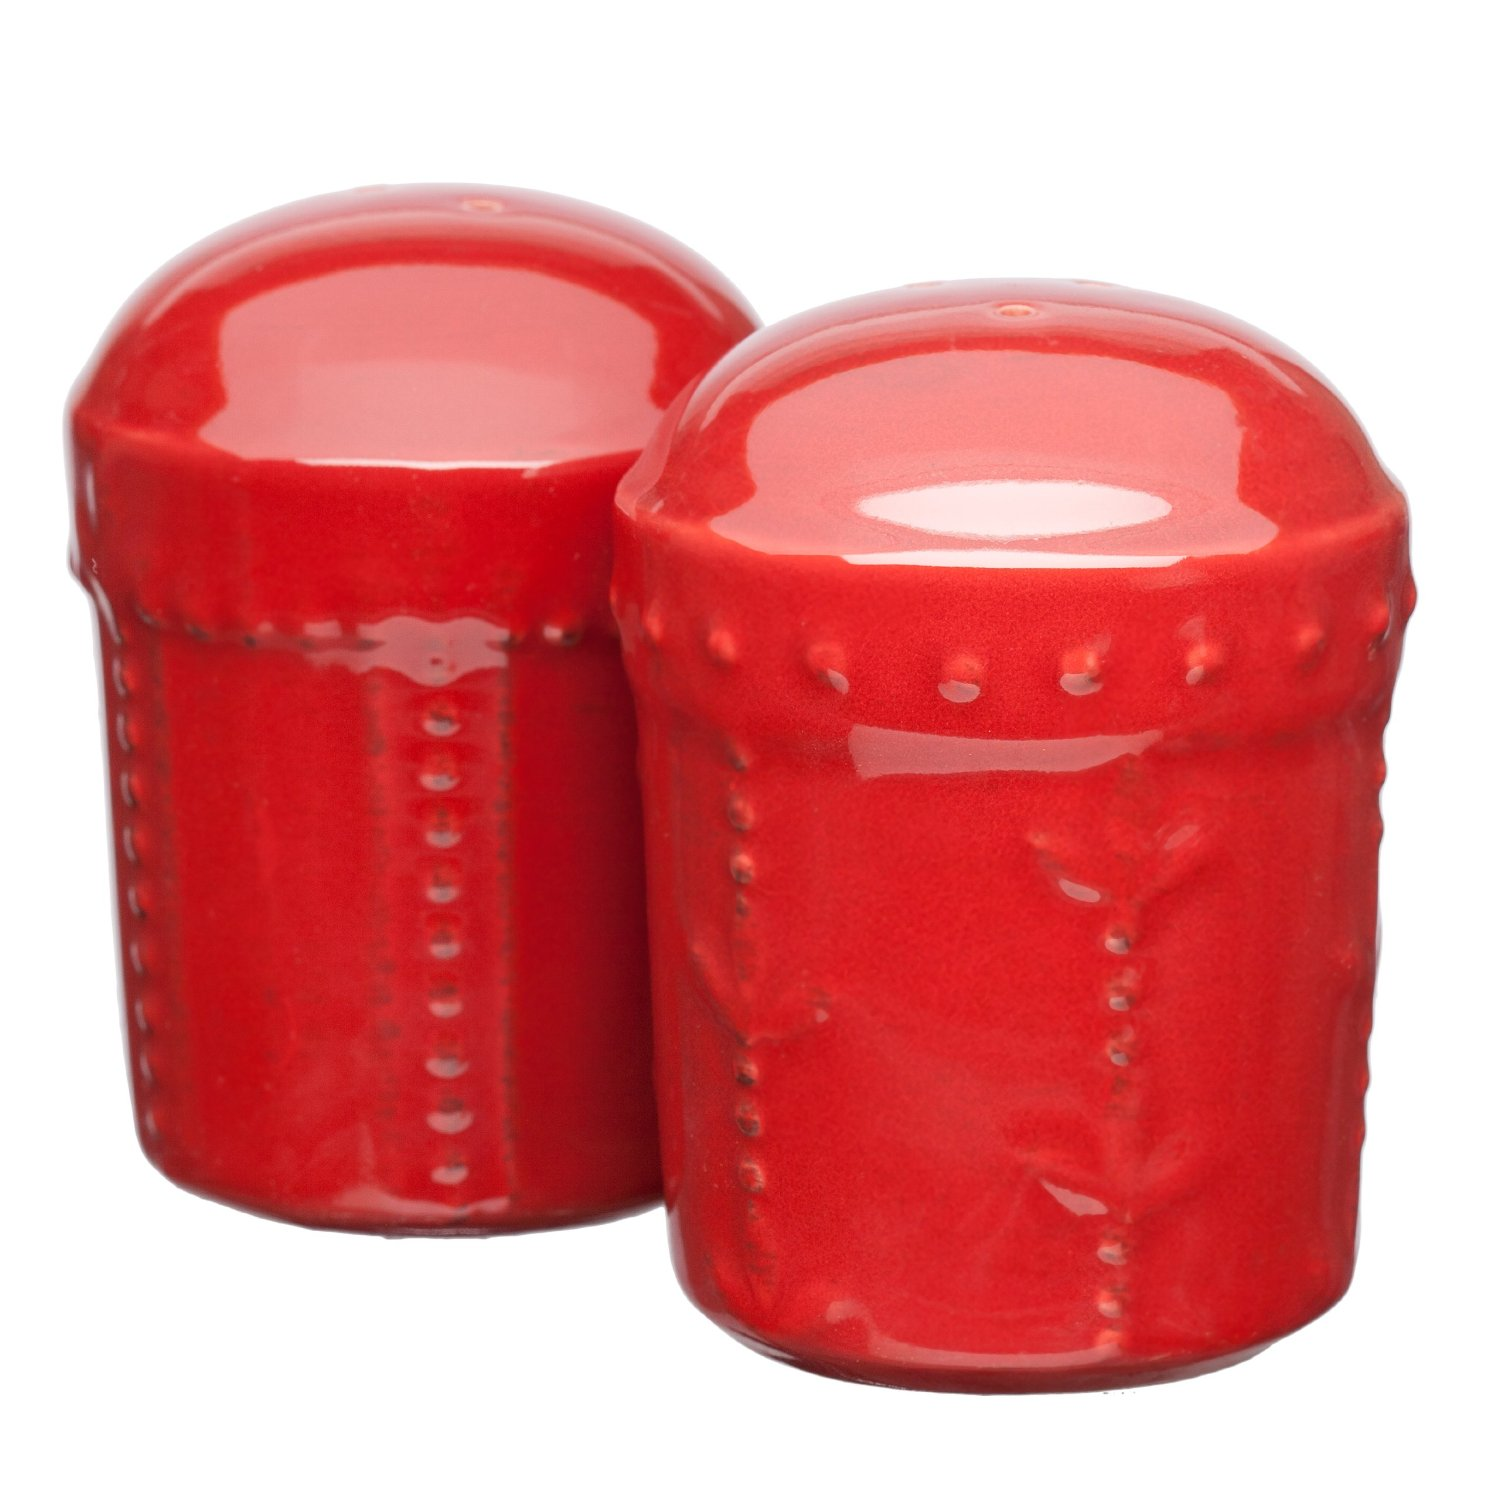 Red salt and pepper shaker